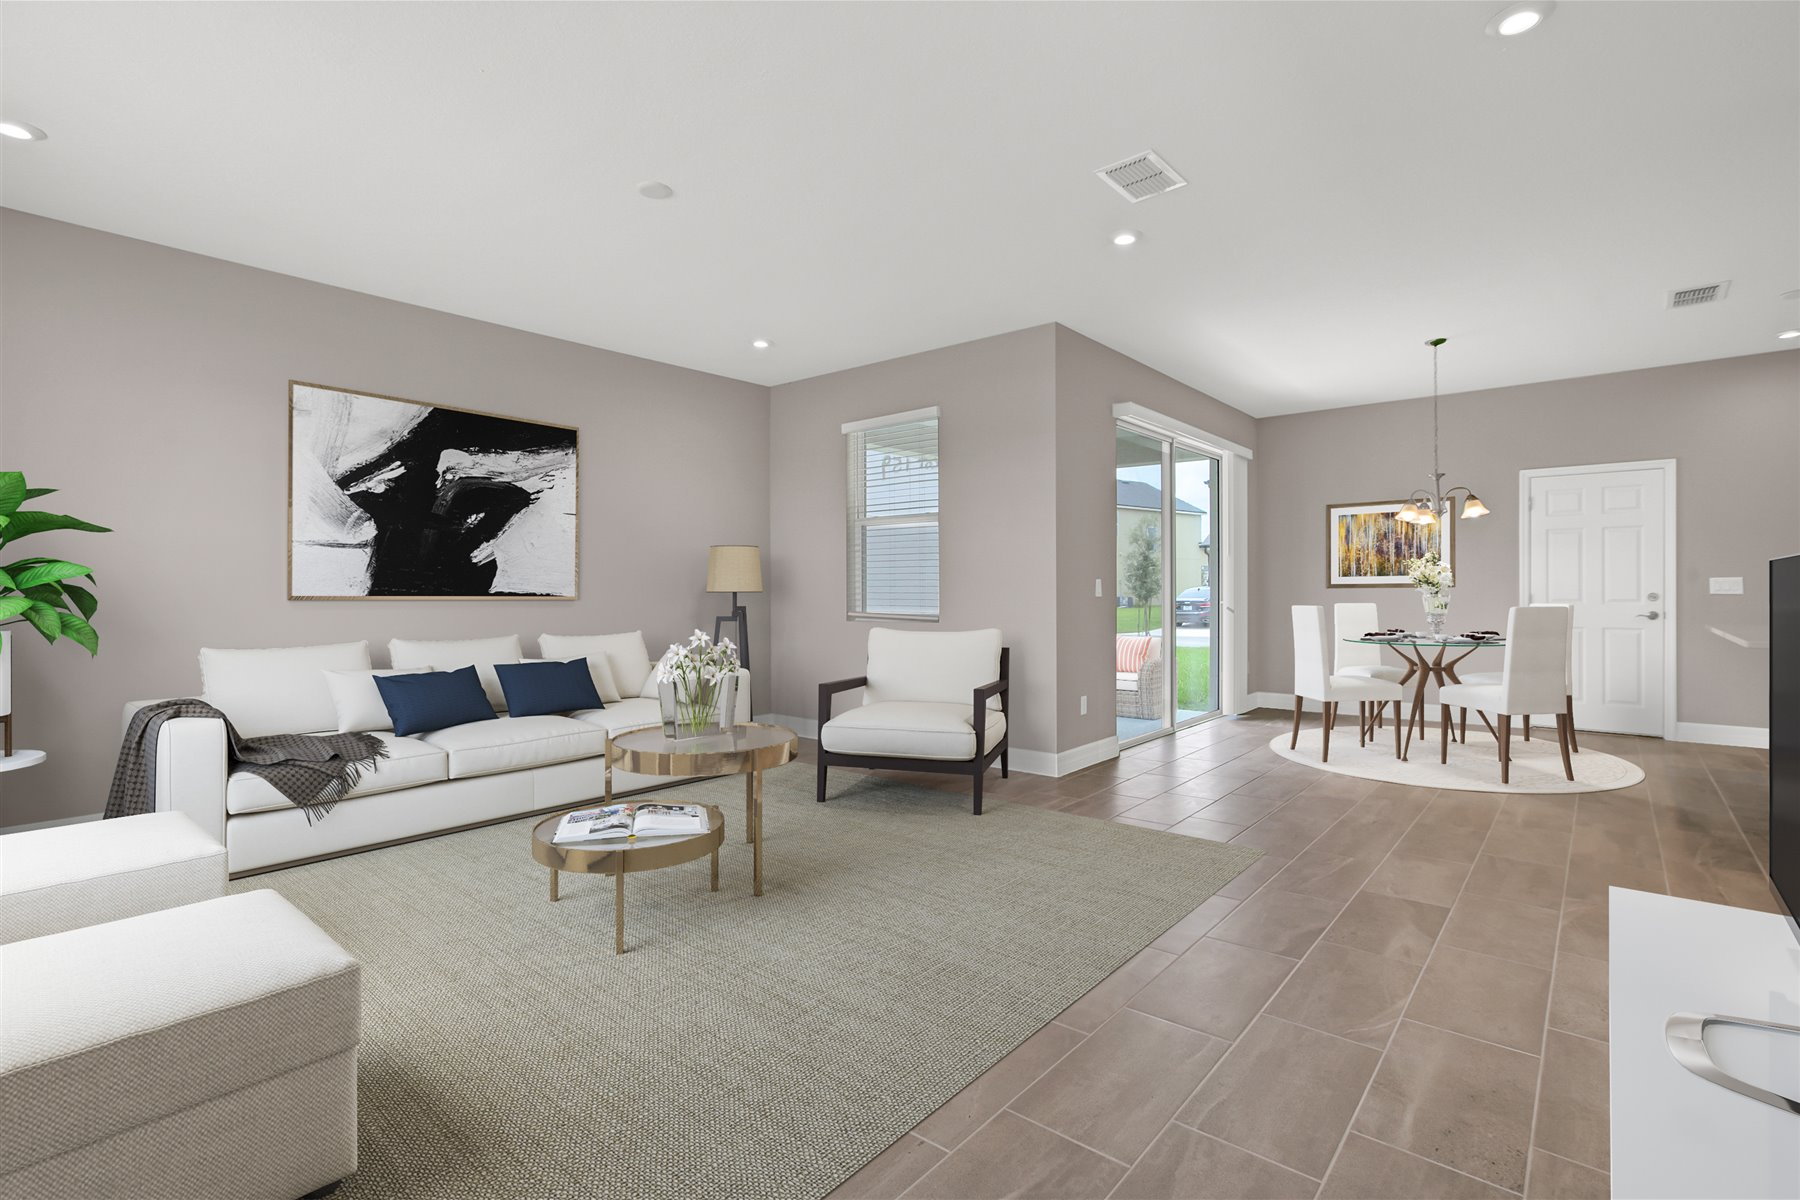 Belmont Plan Greatroom at Tohoqua in Kissimmee Florida by Mattamy Homes